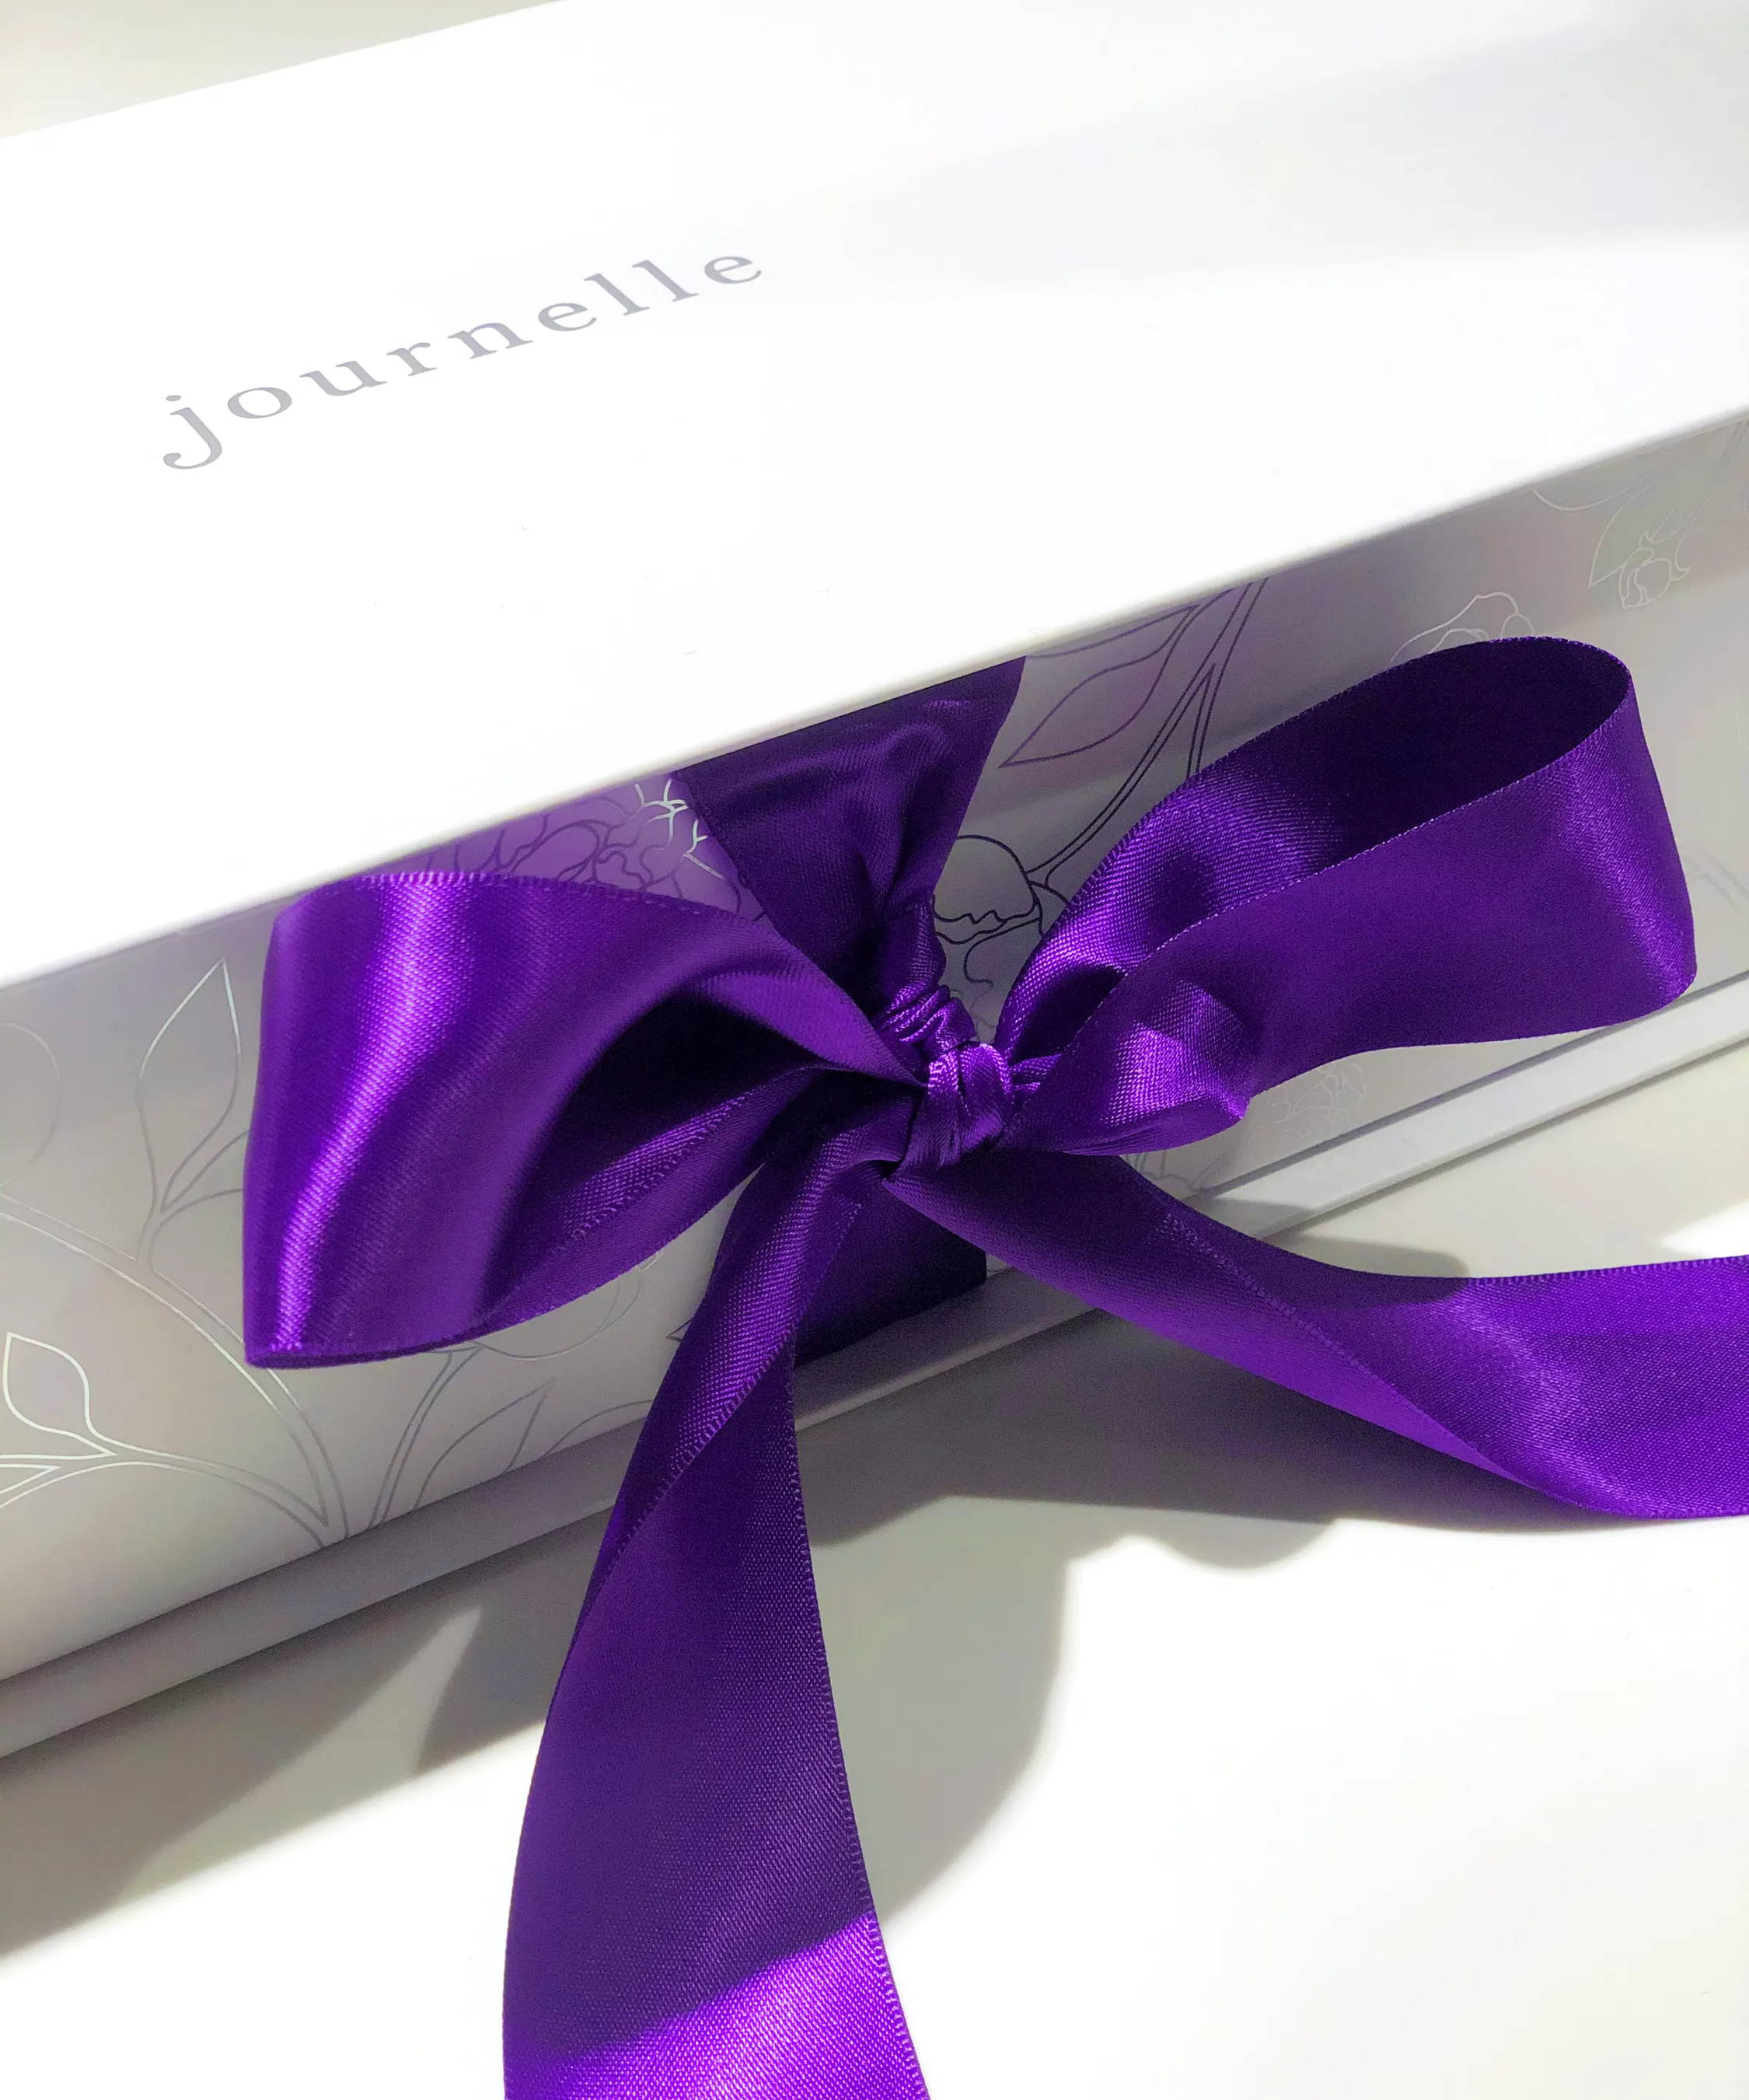 Journelle Holiday Gift Box pagacking in luxury white box with purple ribbon